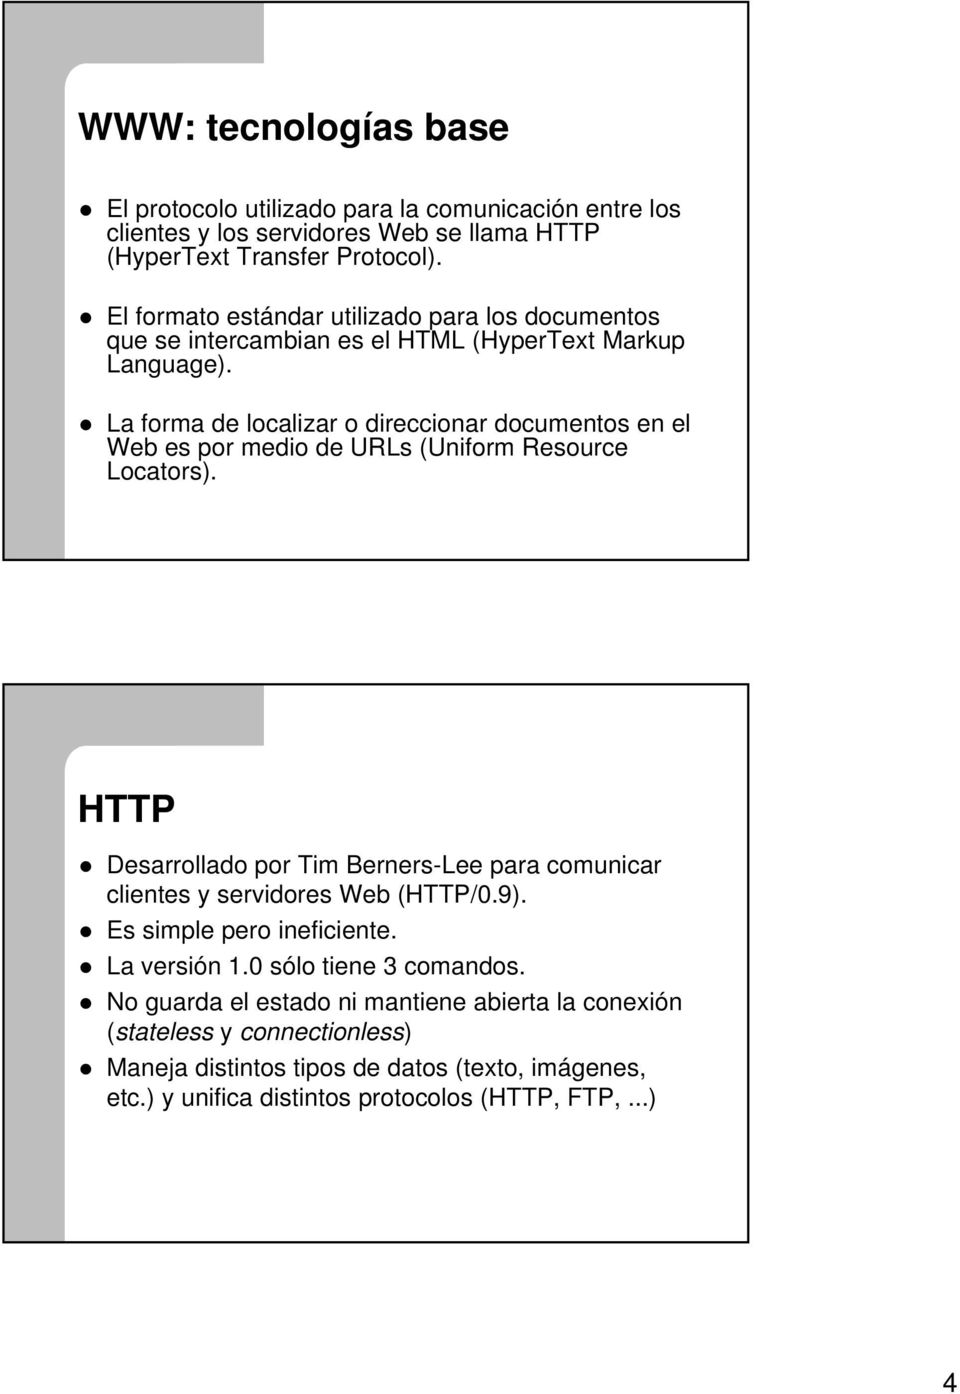 La forma de localizar o direccionar documentos en el Web es por medio de URLs (Uniform Resource Locators).